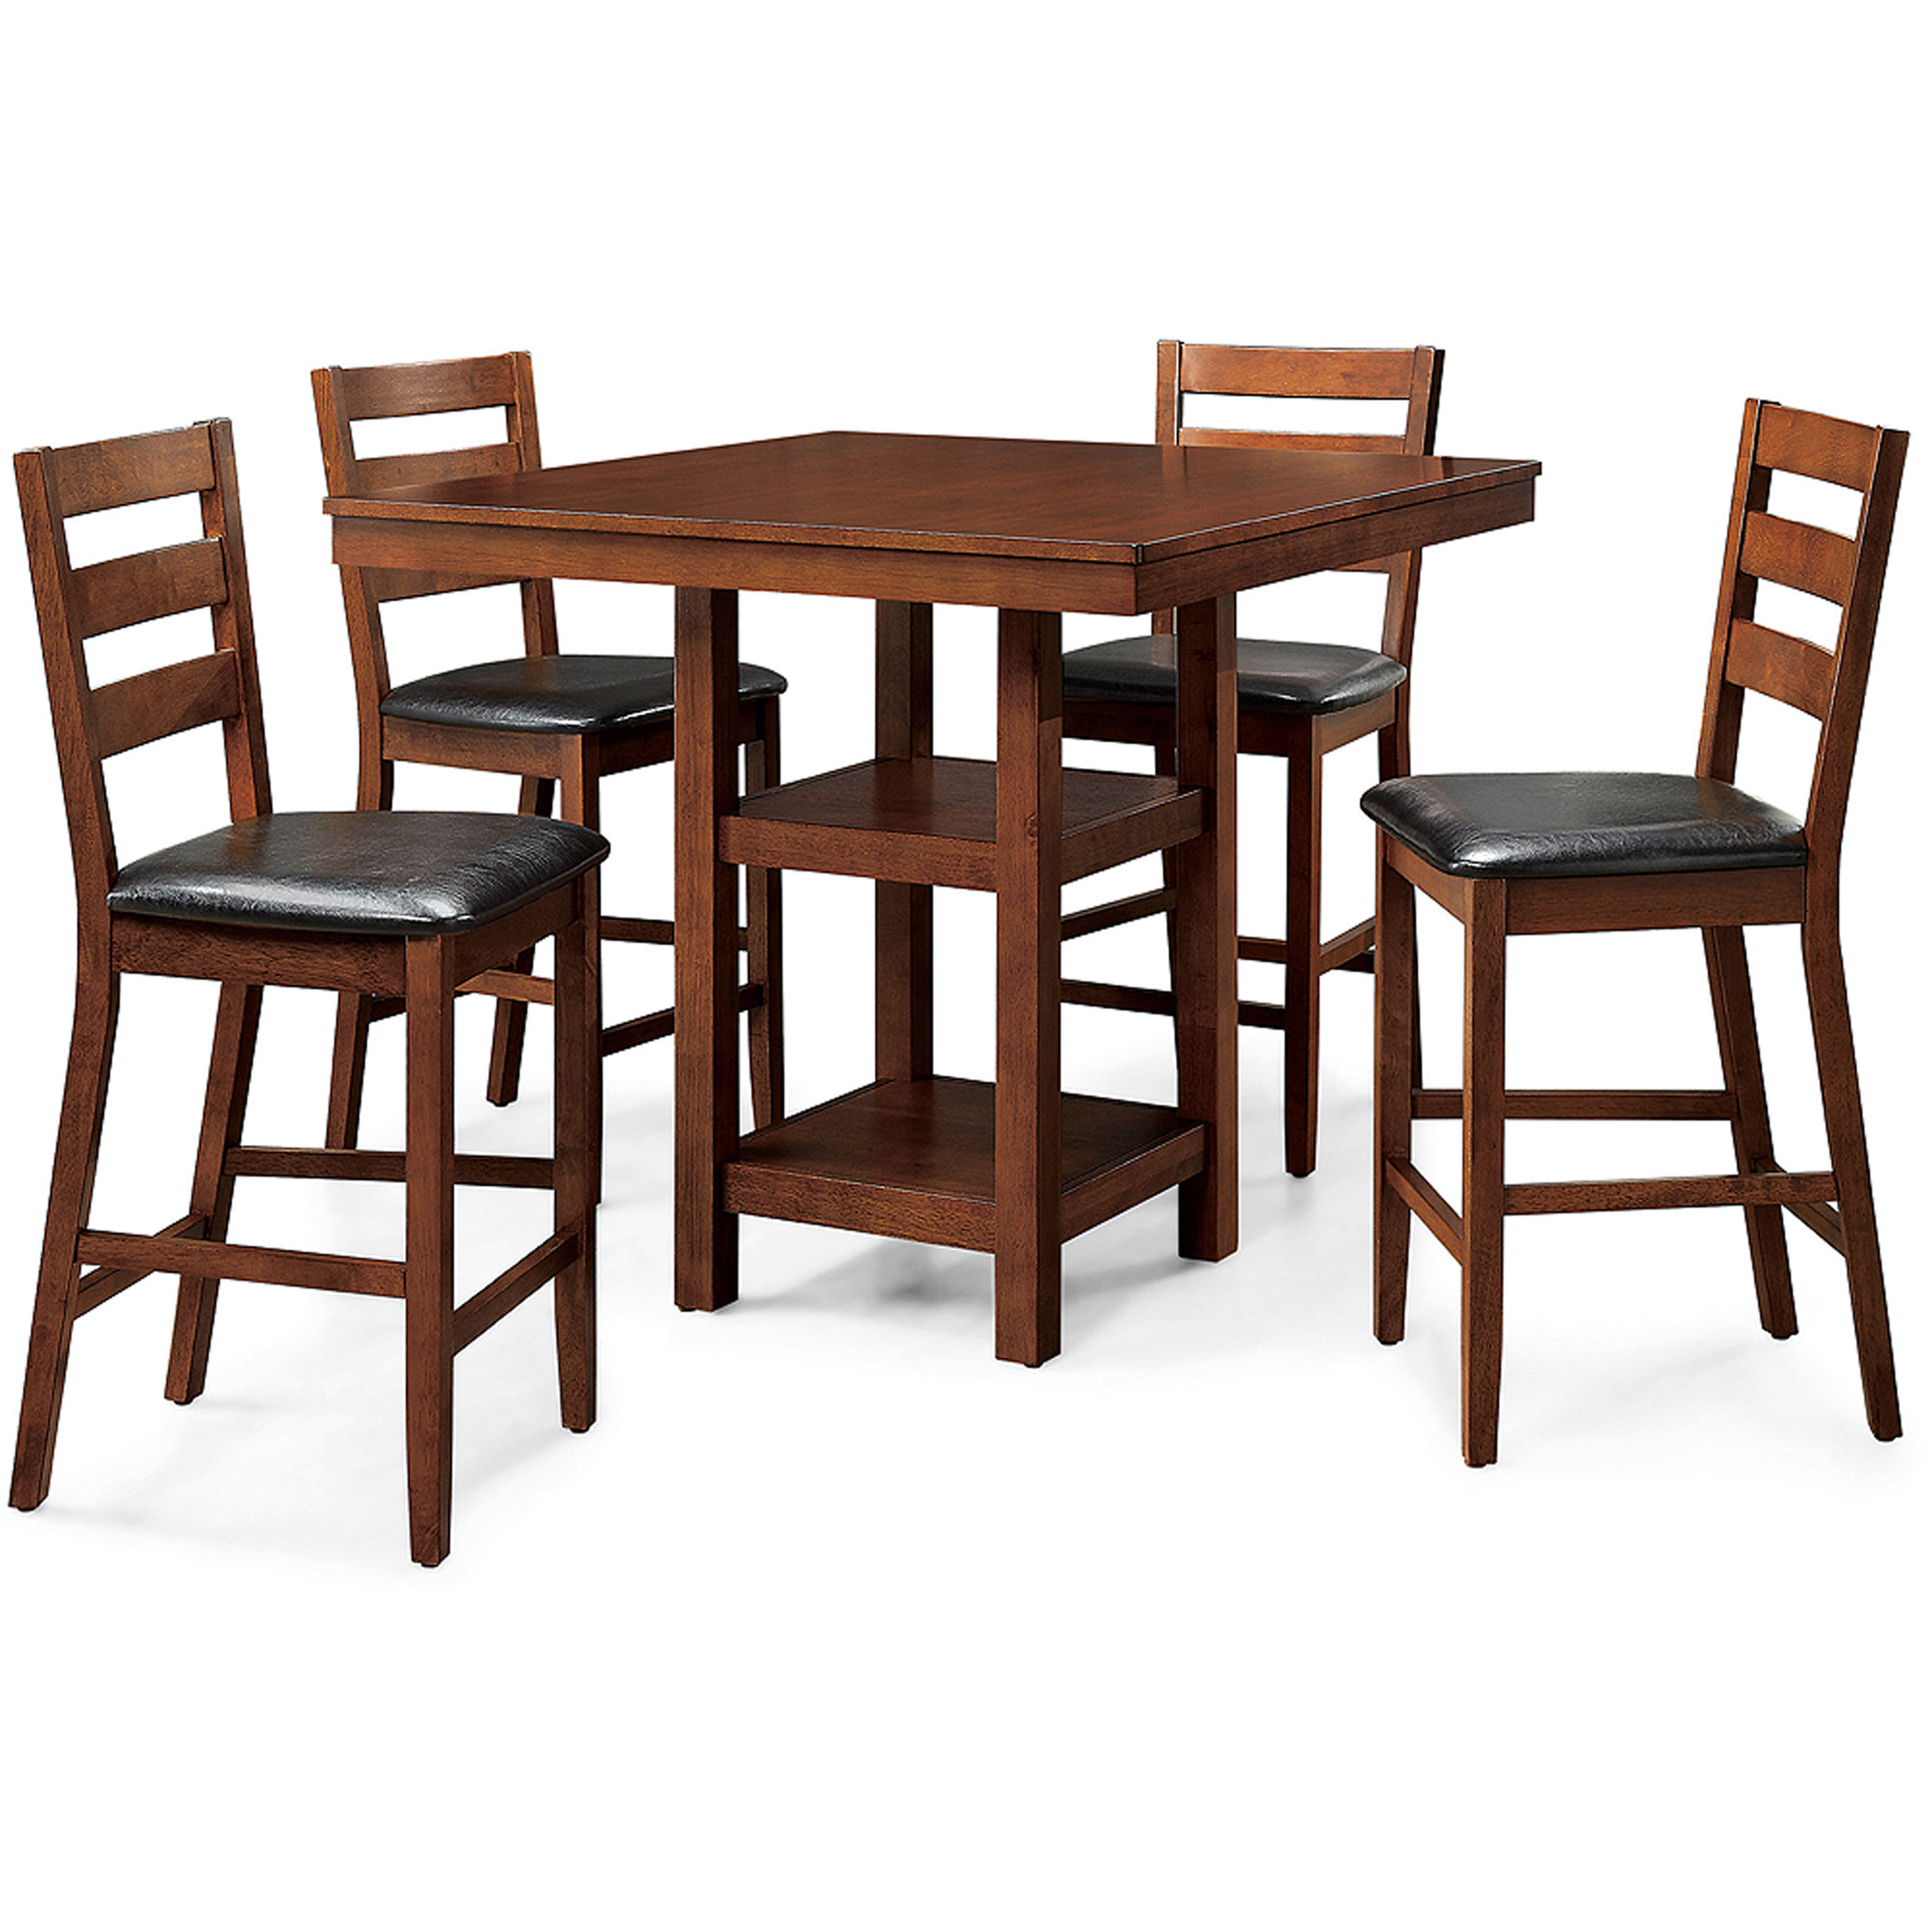 Better Homes & Gardens Dalton Park 5-Piece Counter Height Dining Room Set, Includes Table and Four Chairs, Mocha Finish by .